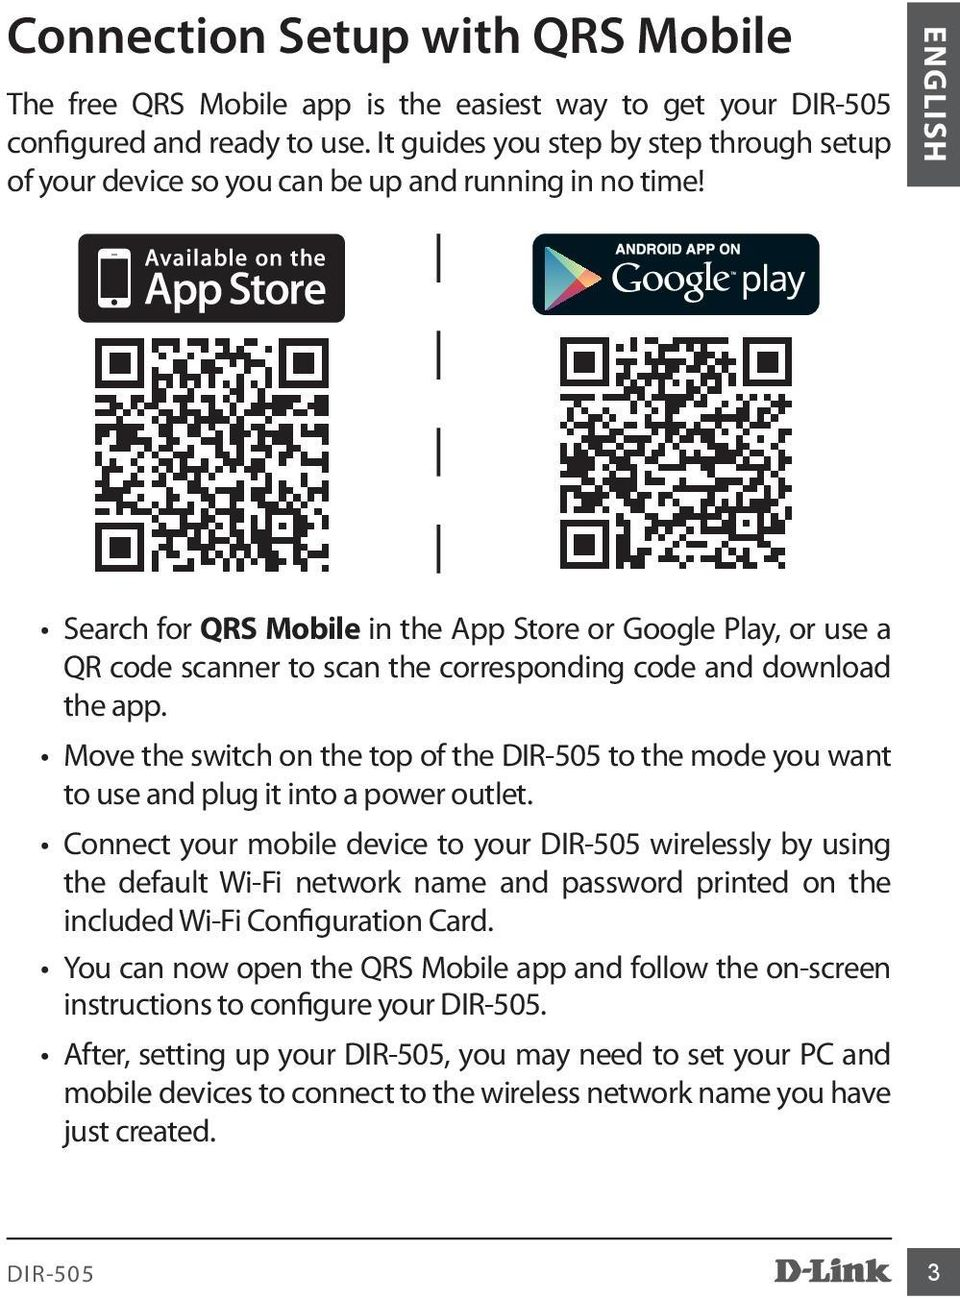 ENGLISH Search for QRS Mobile in the App Store or Google Play, or use a QR code scanner to scan the corresponding code and download the app.